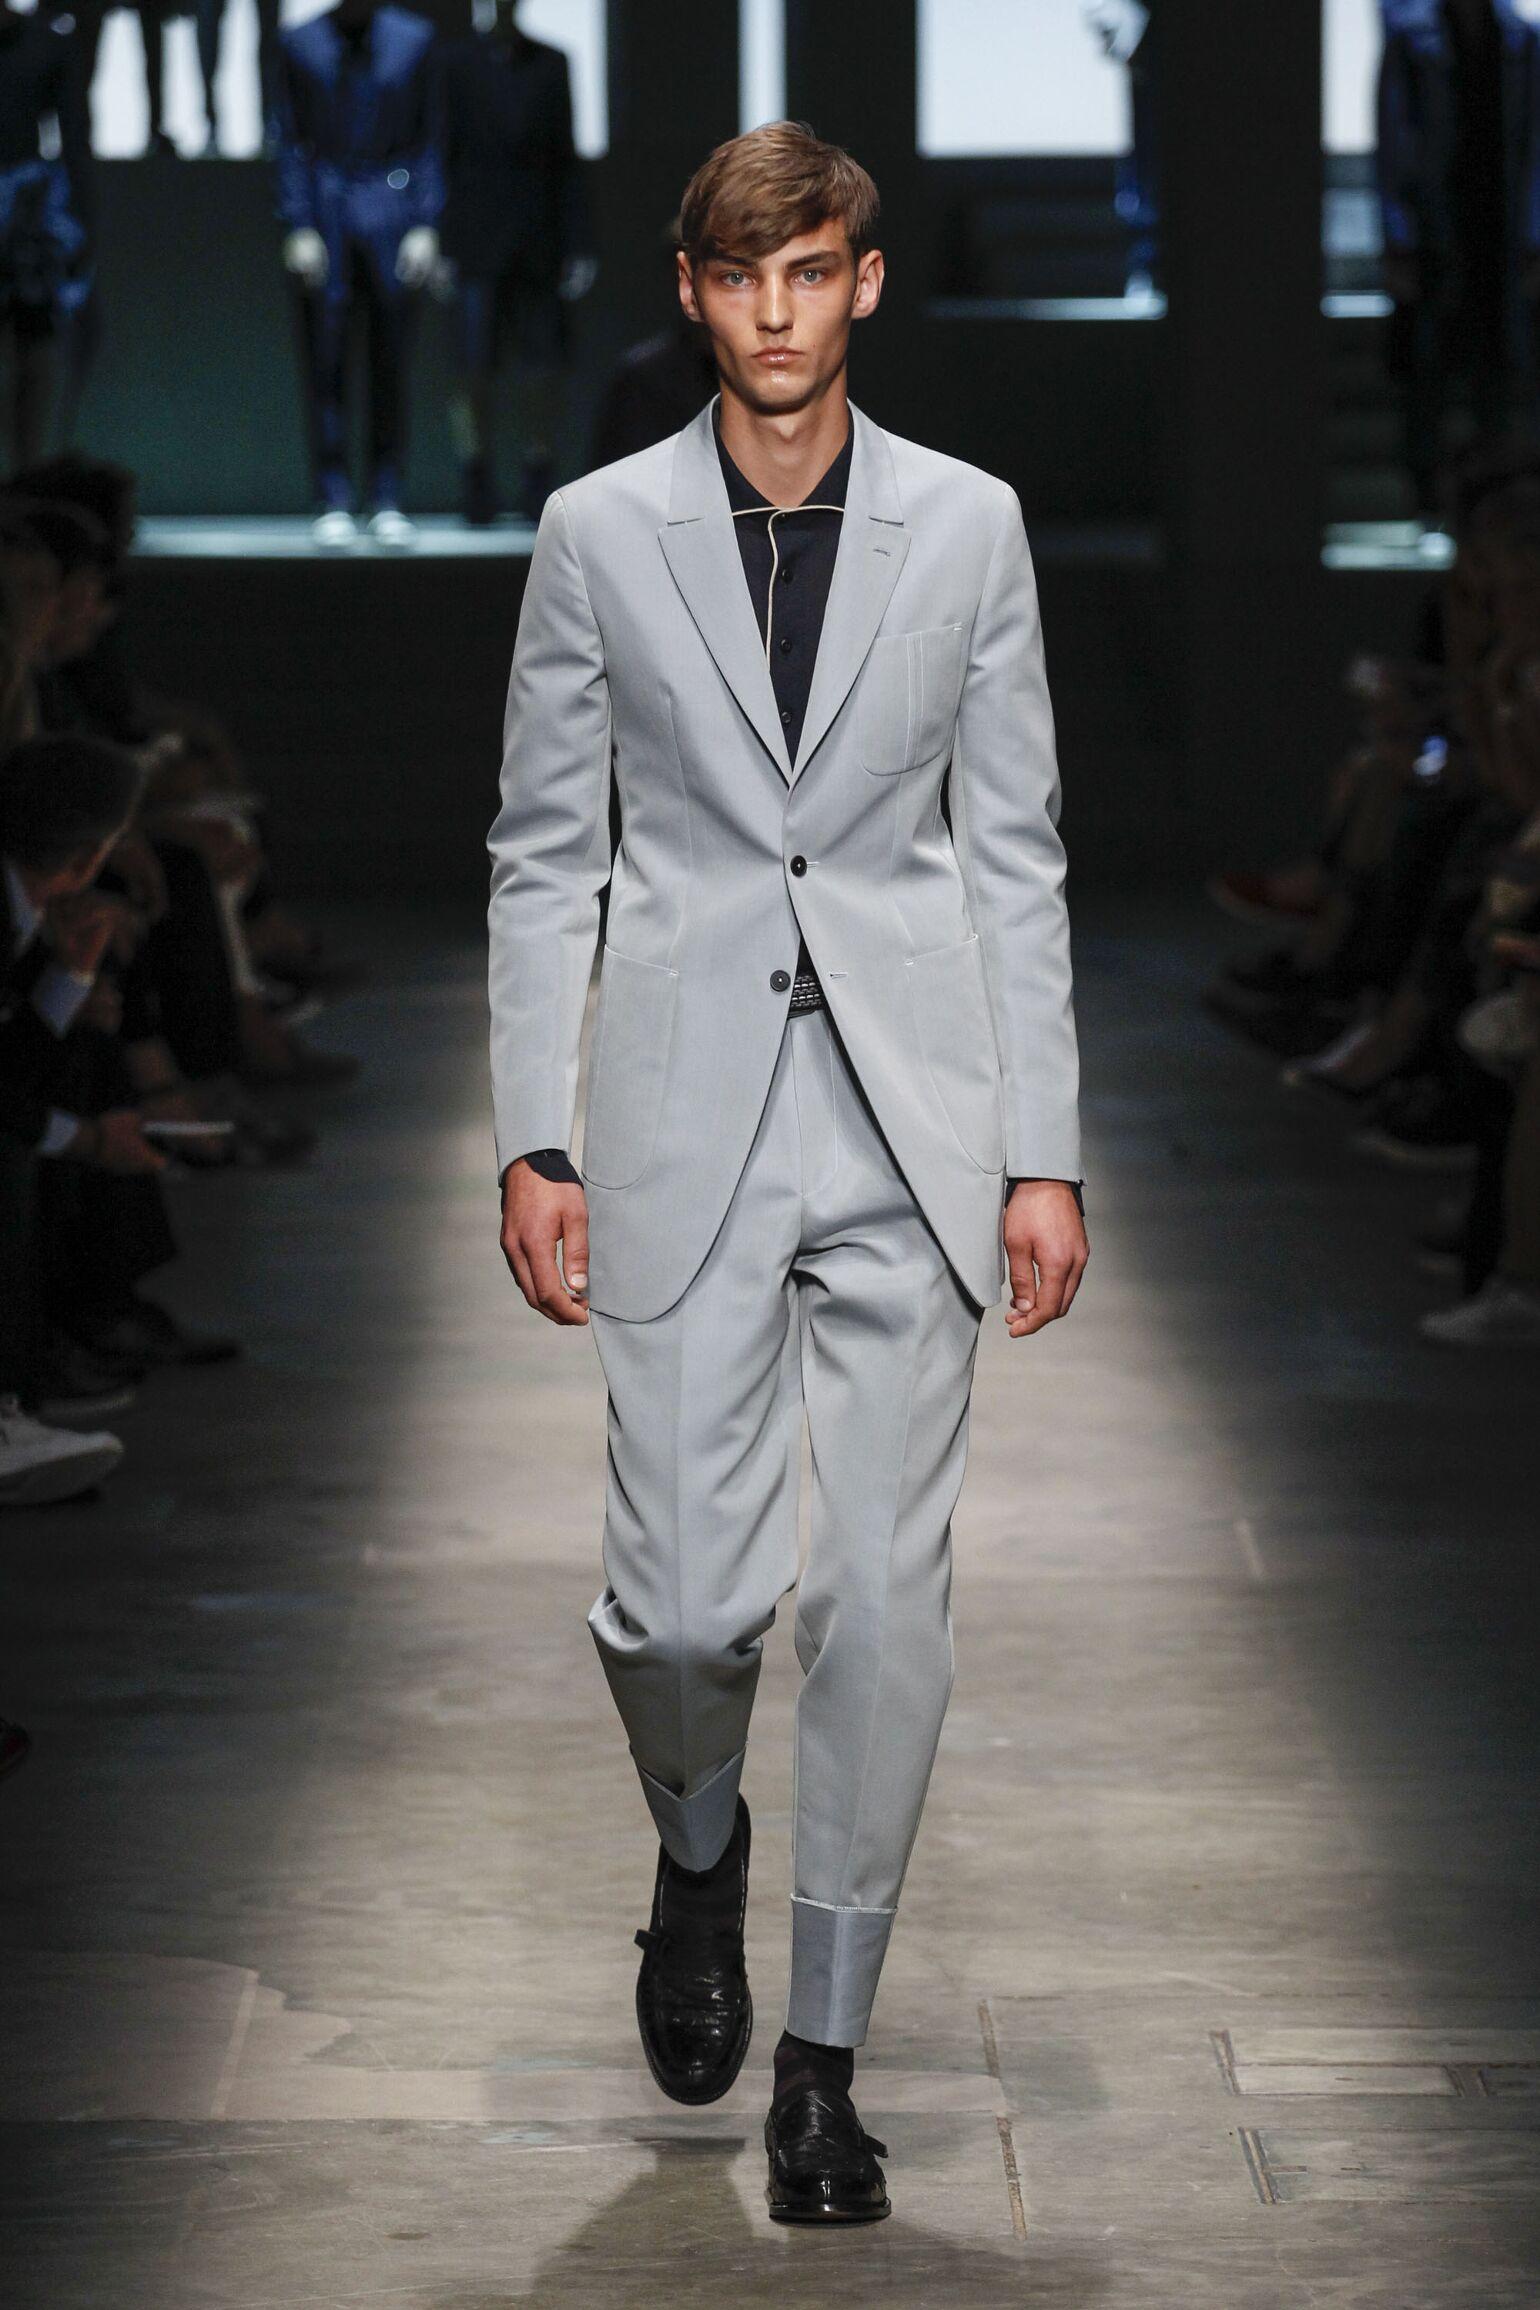 Summer Fashion Trends 2015 Ermenegildo Zegna Couture